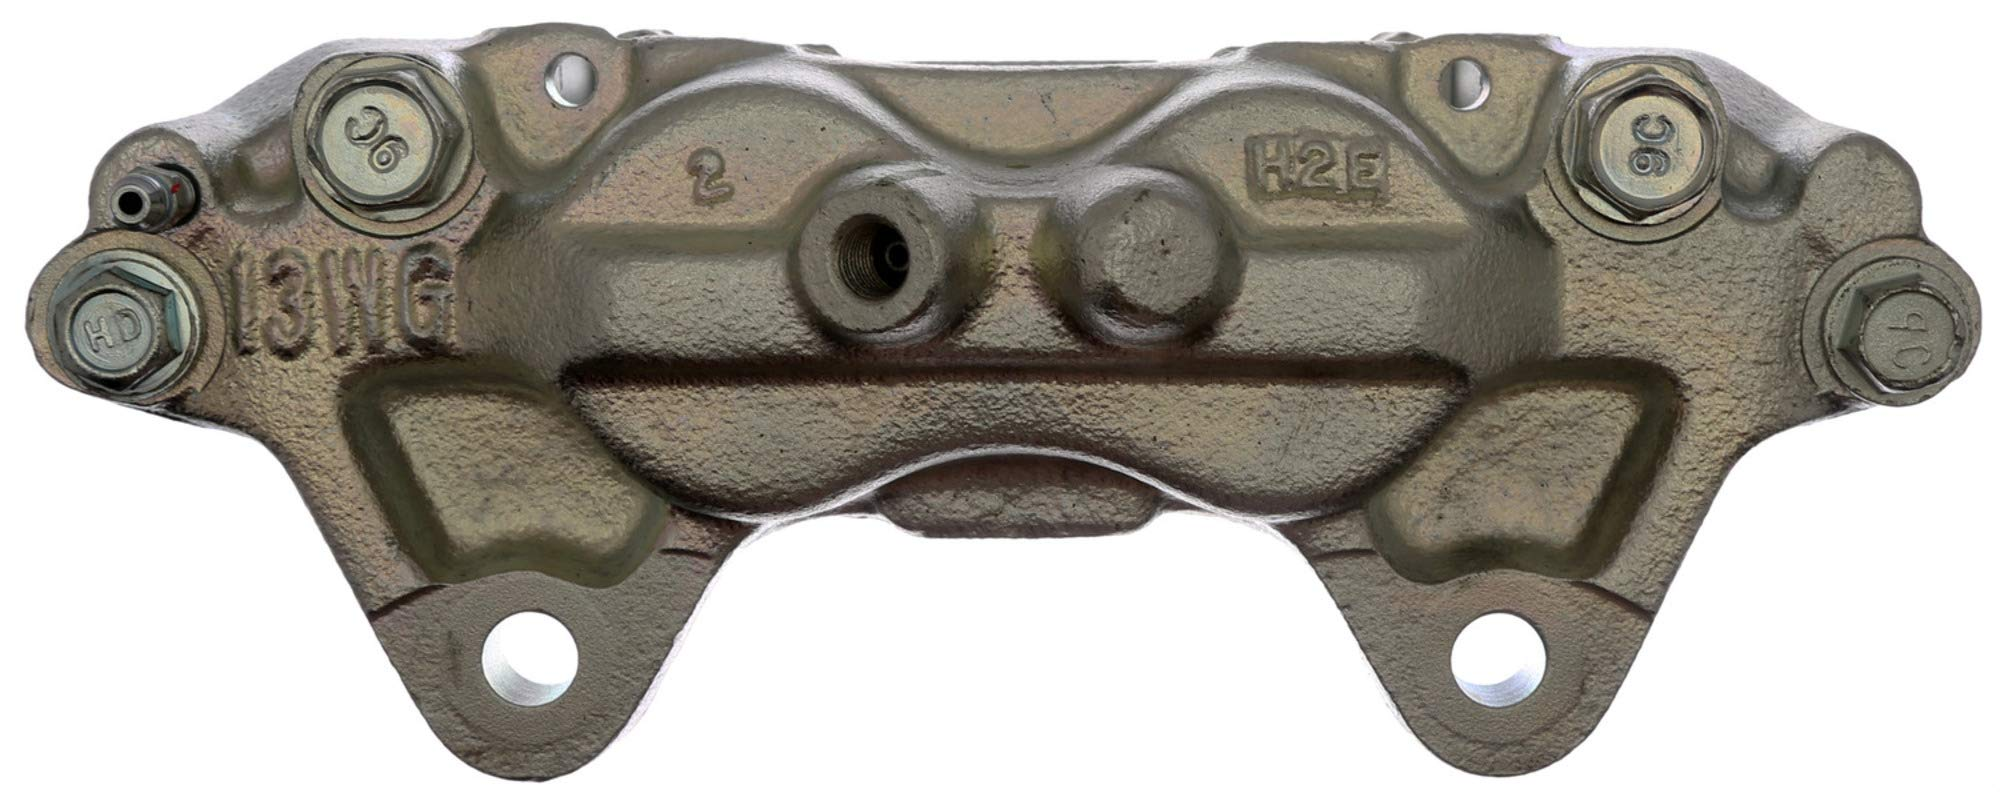 ACDelco 18FR2141C Professional Front Passenger Side Disc Brake Caliper Assembly without Pads (Friction Ready Coated), Remanufactured